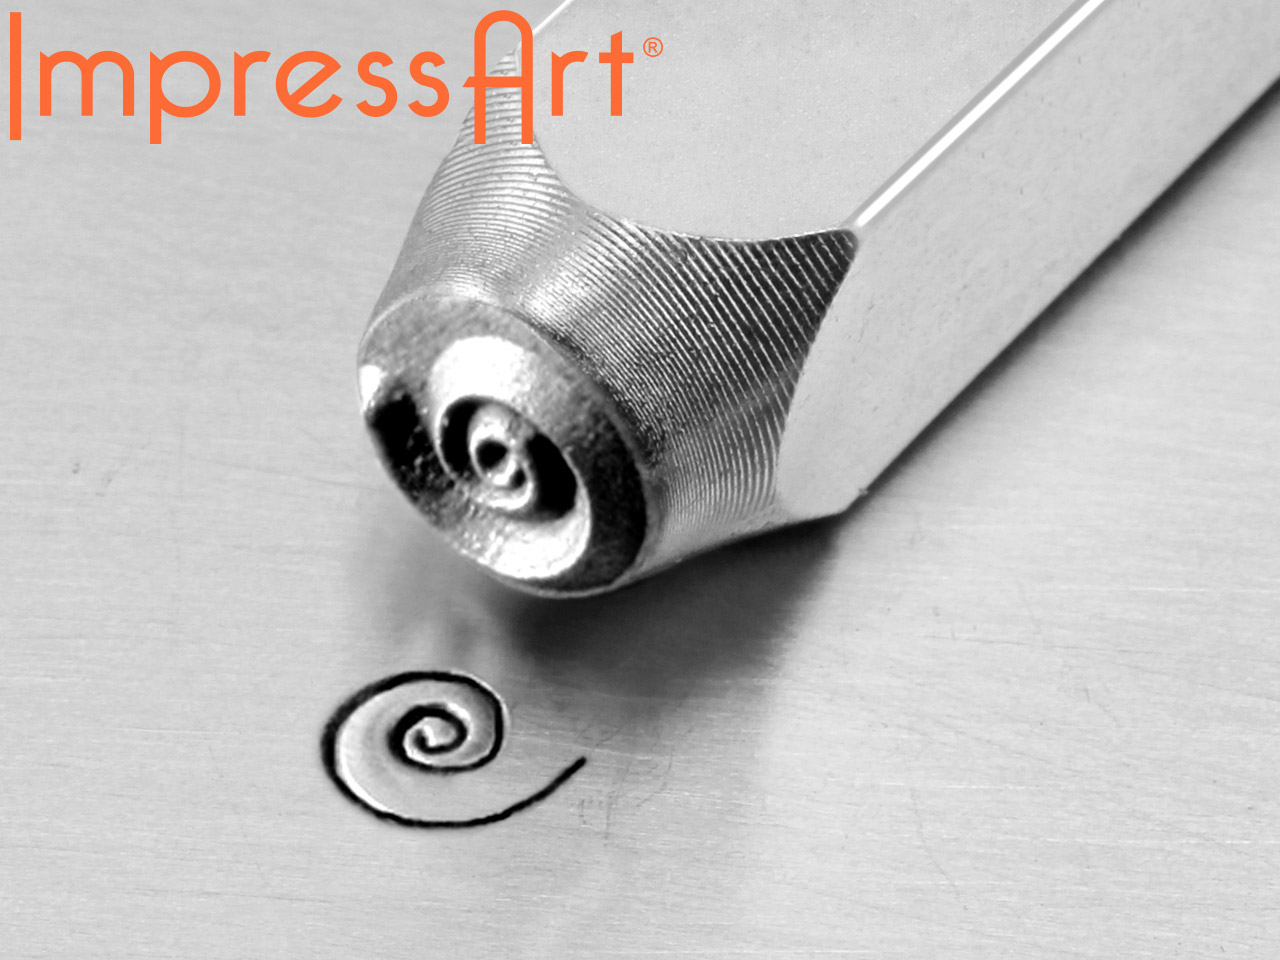 ImpressArt-Symbols-and-Design-Metal-Stamping-Metal-Stamps thumbnail 41